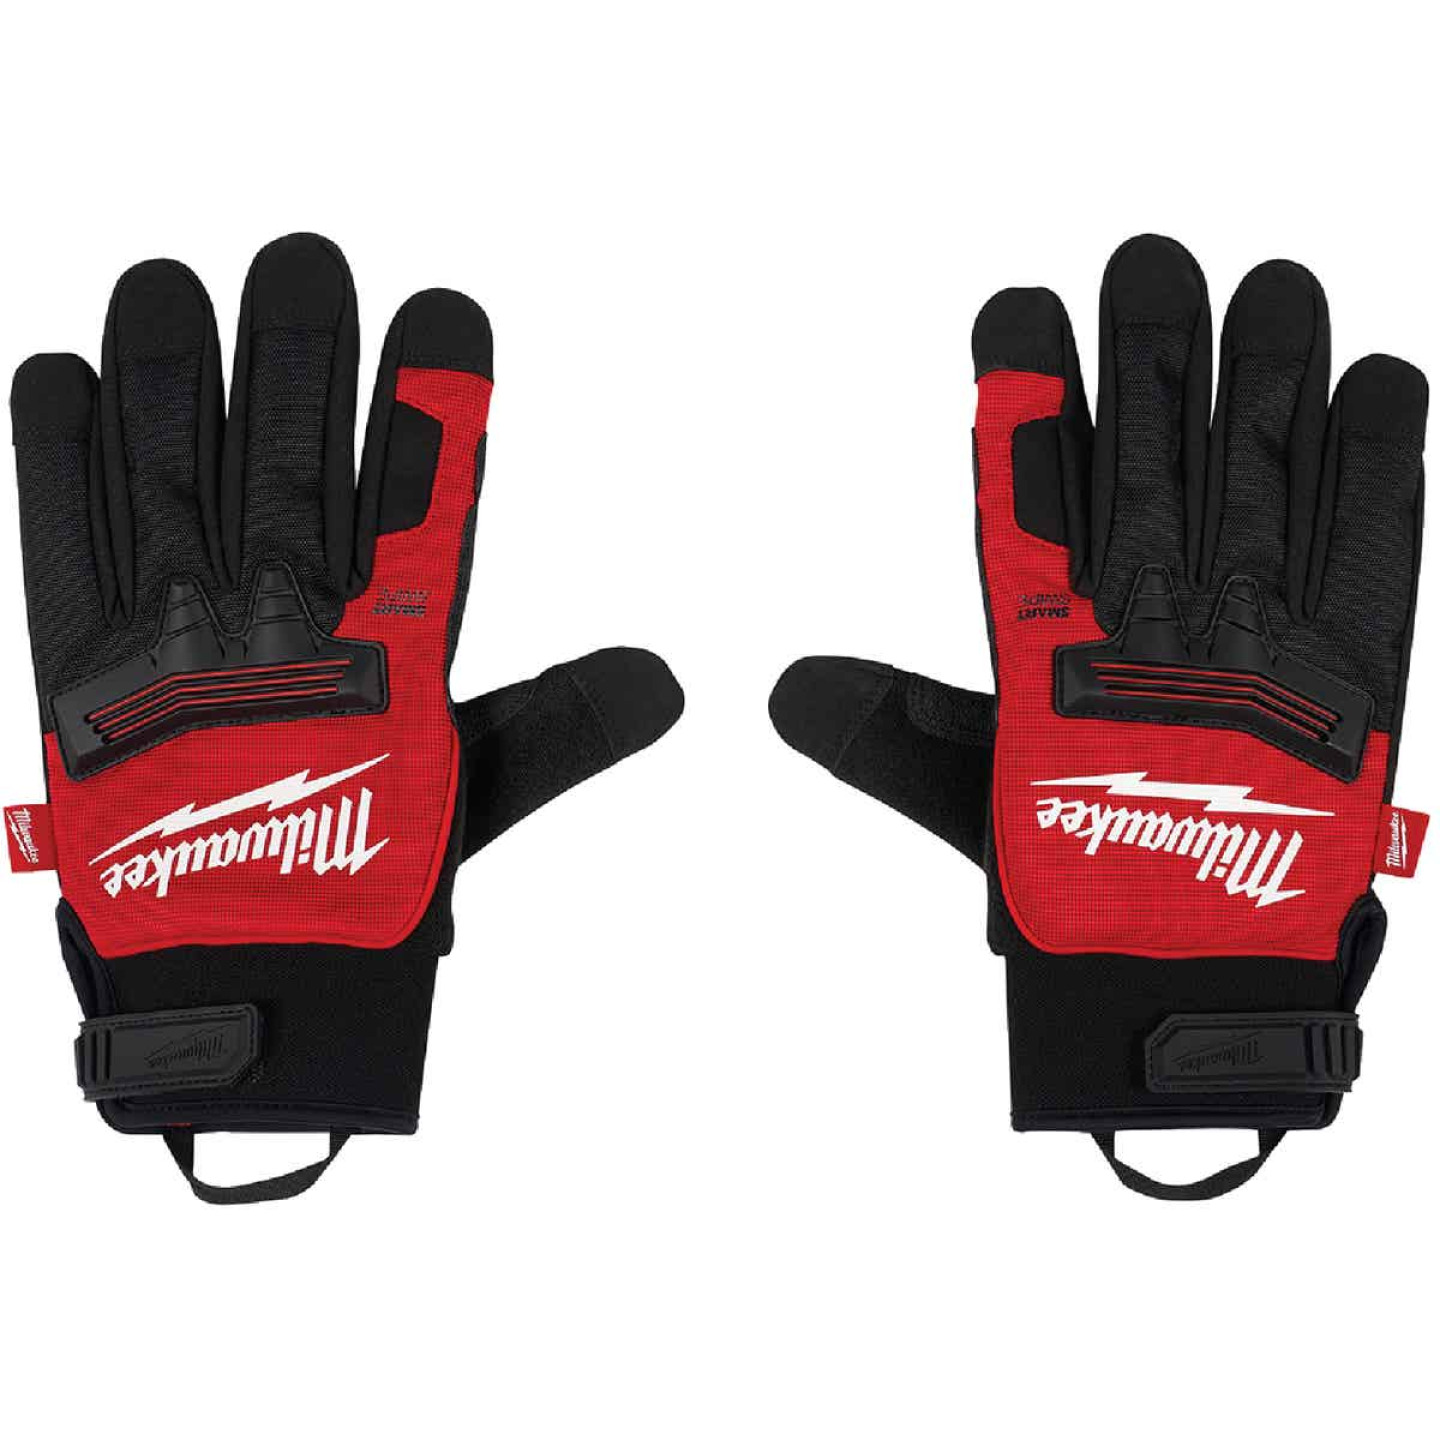 Milwaukee Men's XL Synthetic Winter Demolition Glove Image 2